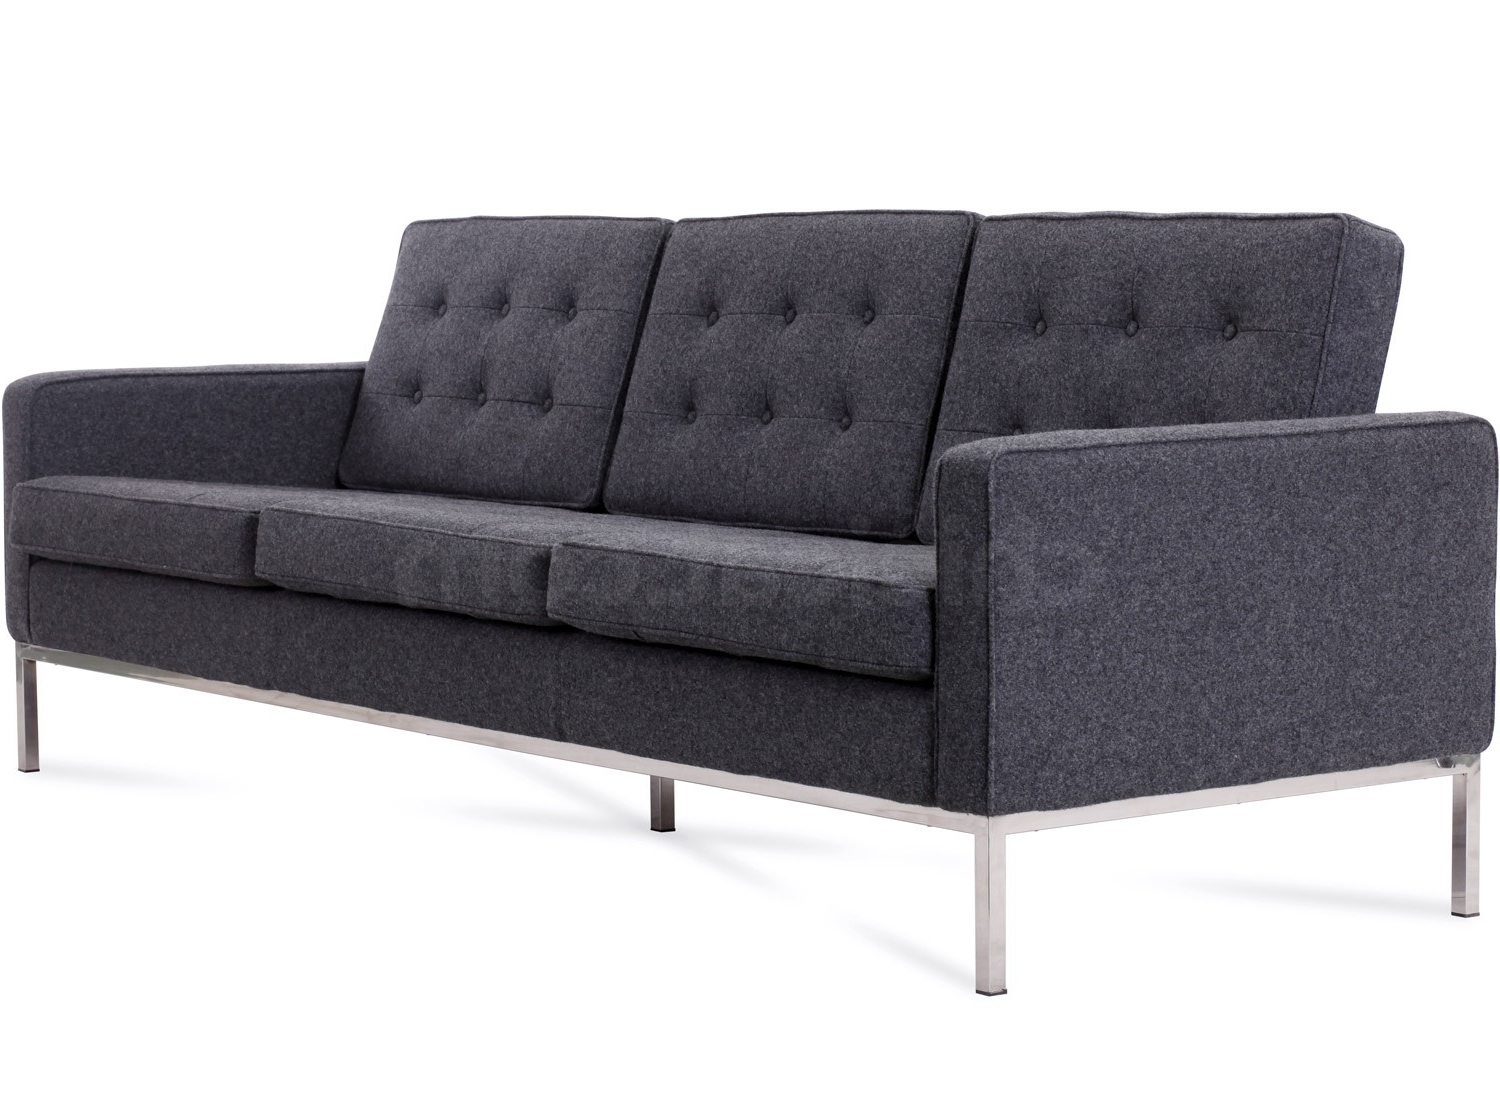 Recent Florence Knoll 3 Seater Sofas With Regard To Florence Knoll Sofa 3 Seater Wool (Platinum Replica) (View 6 of 15)